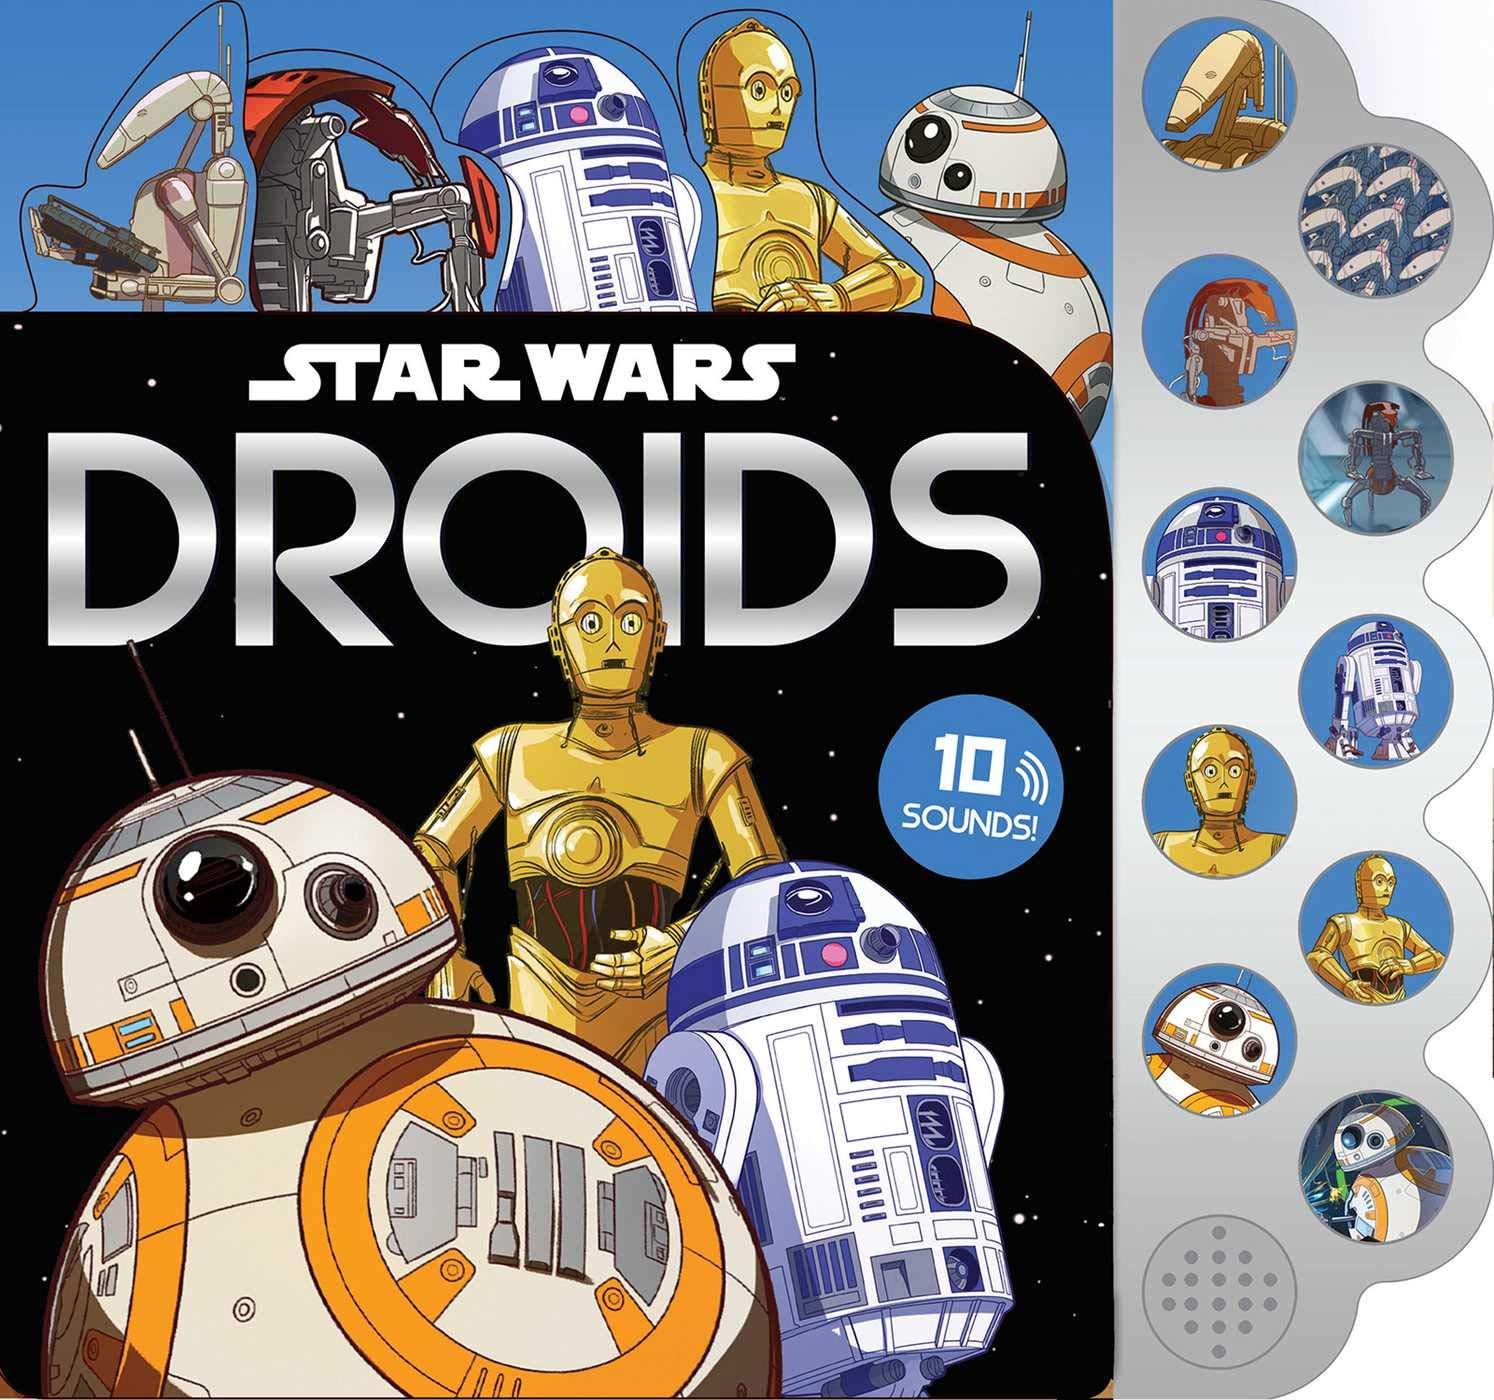 Star Wars: Droids - 10-Button Sound Book (01.10.2019)